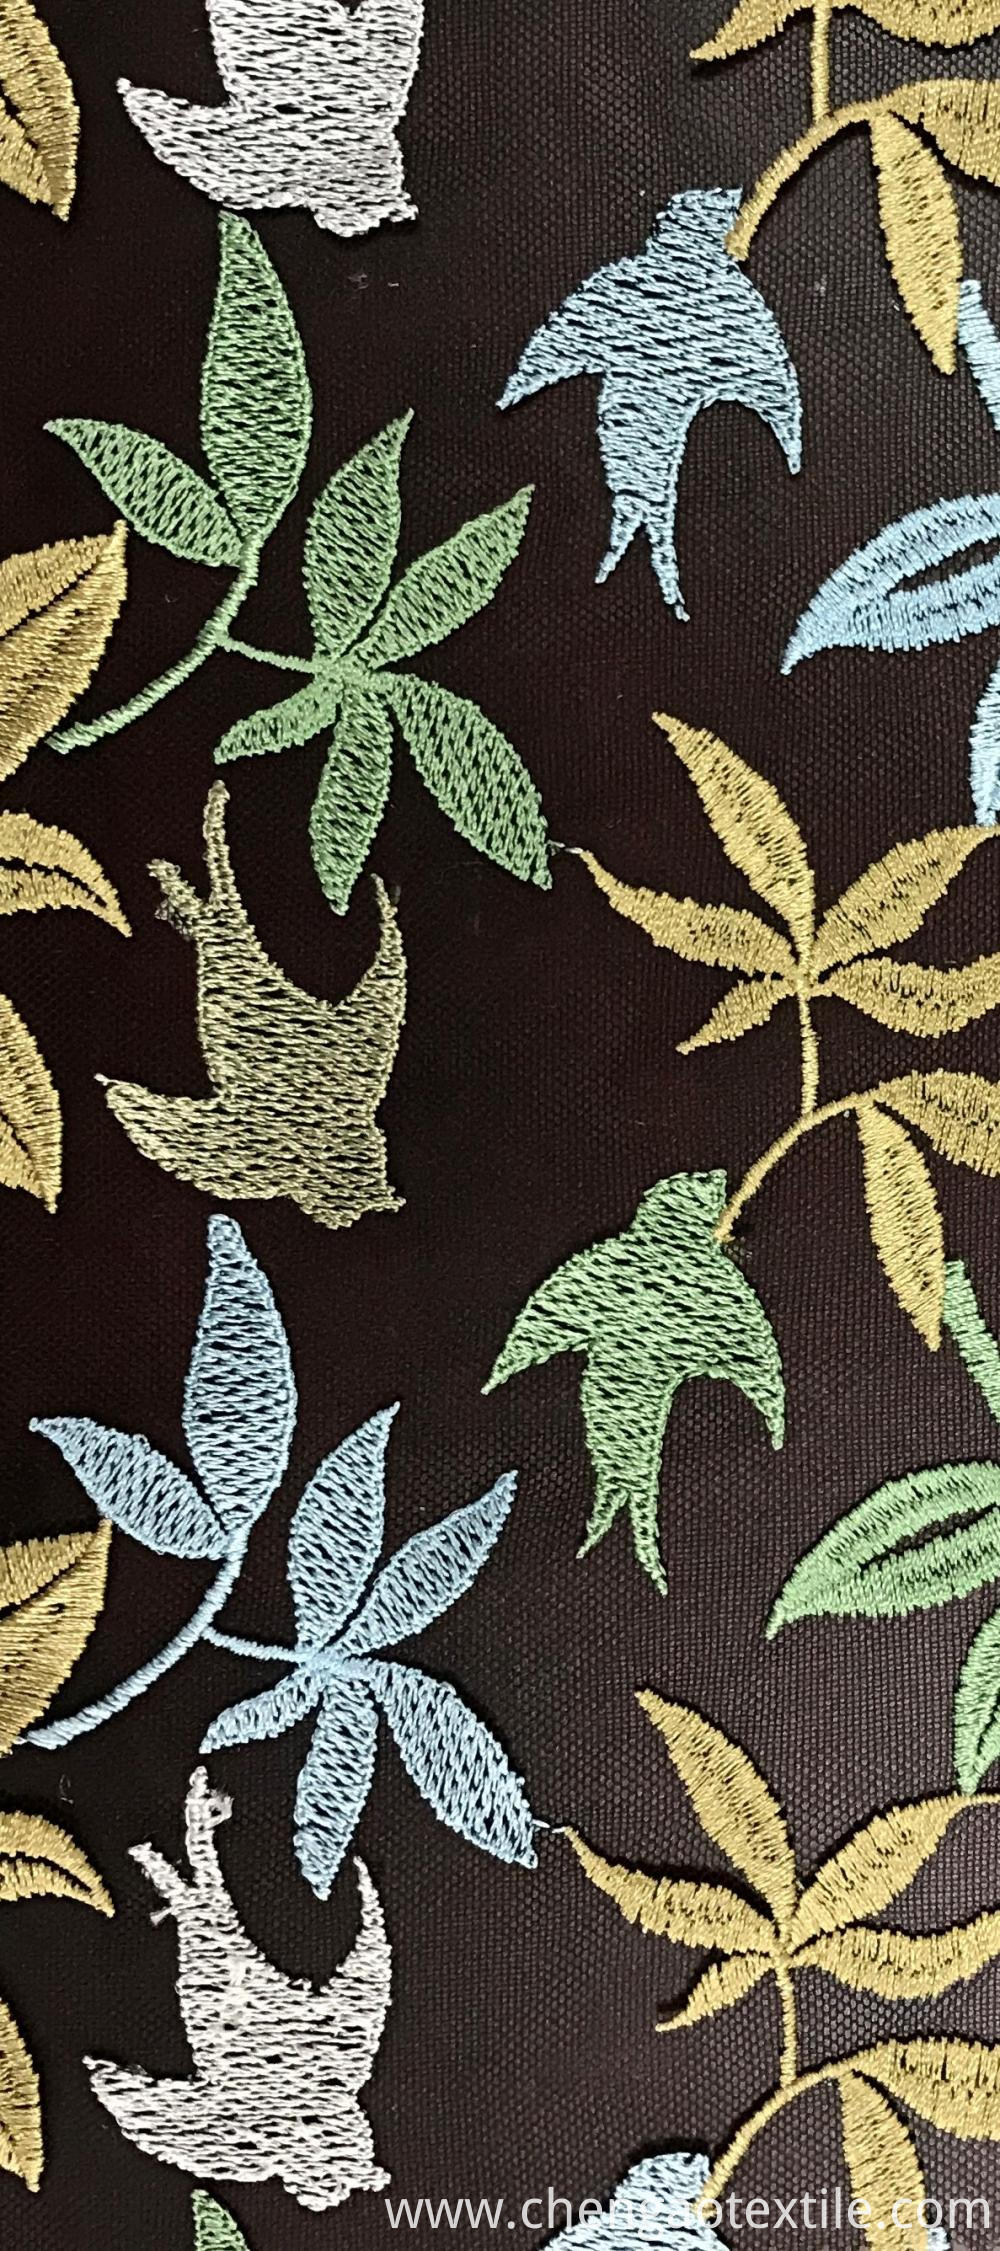 Leaves and birds Mesh Embroider Fabric